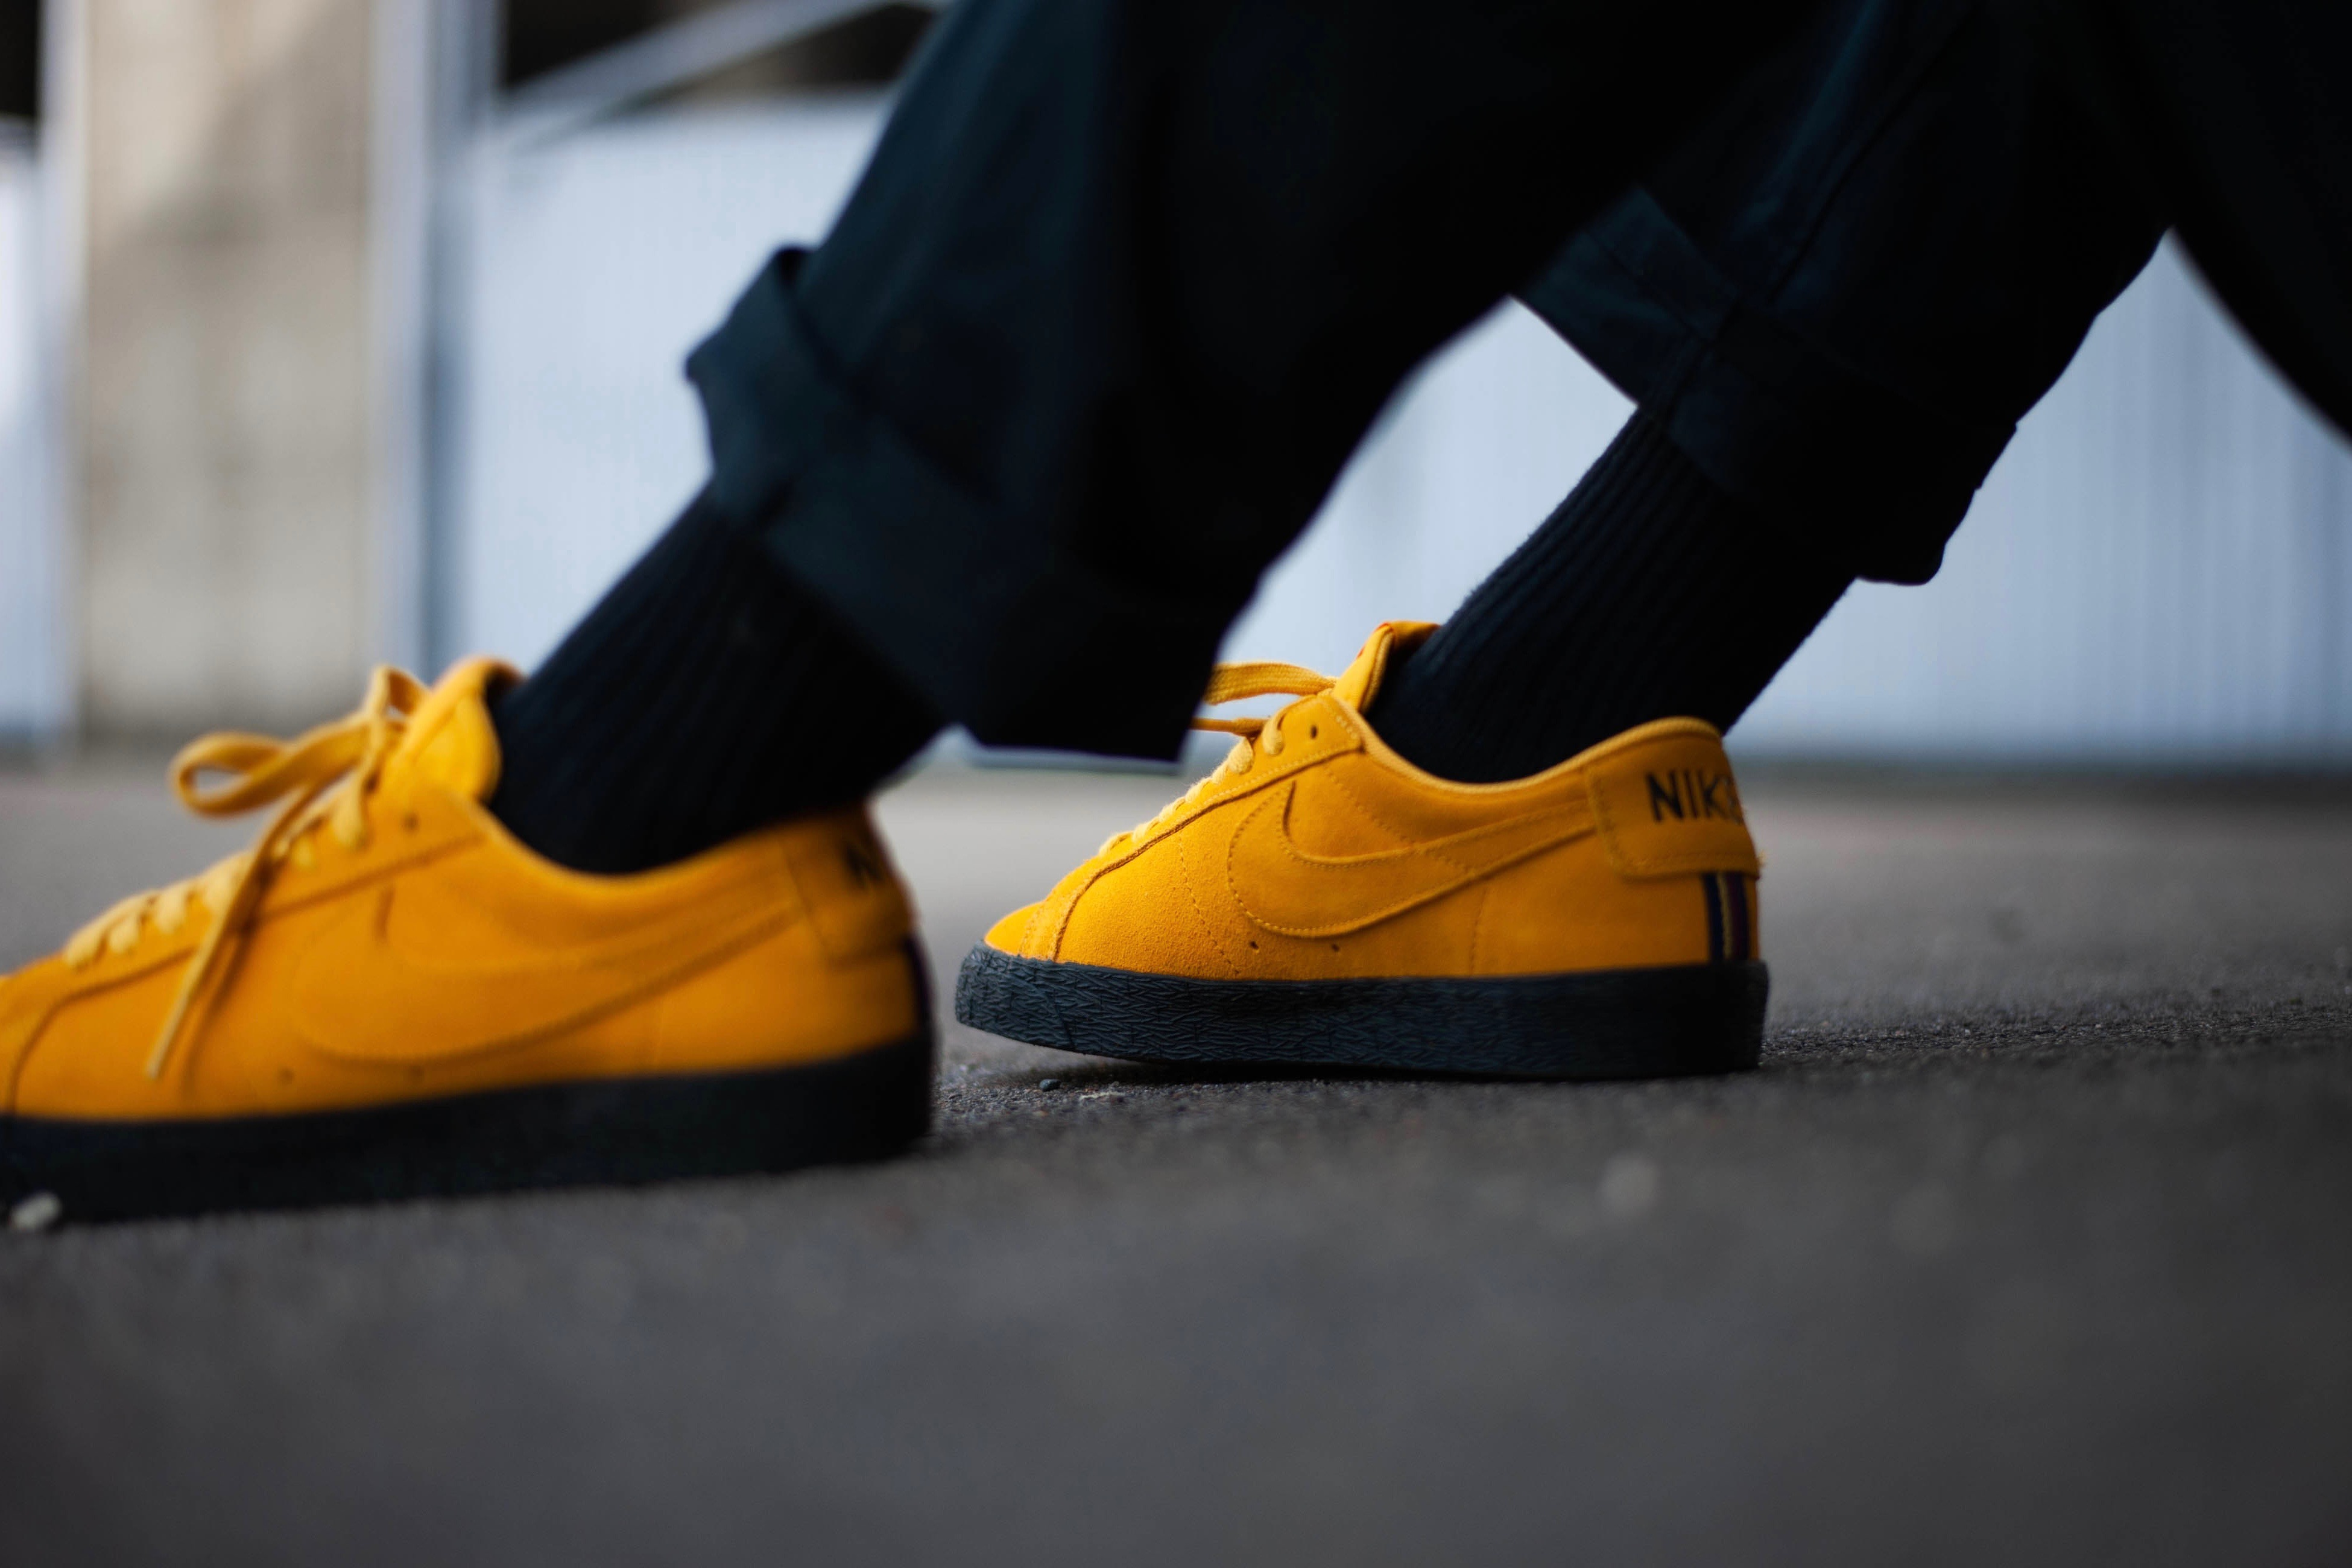 finest selection 3c7af 771f0 promo code for nike blazer low yellow e8fbd 25323